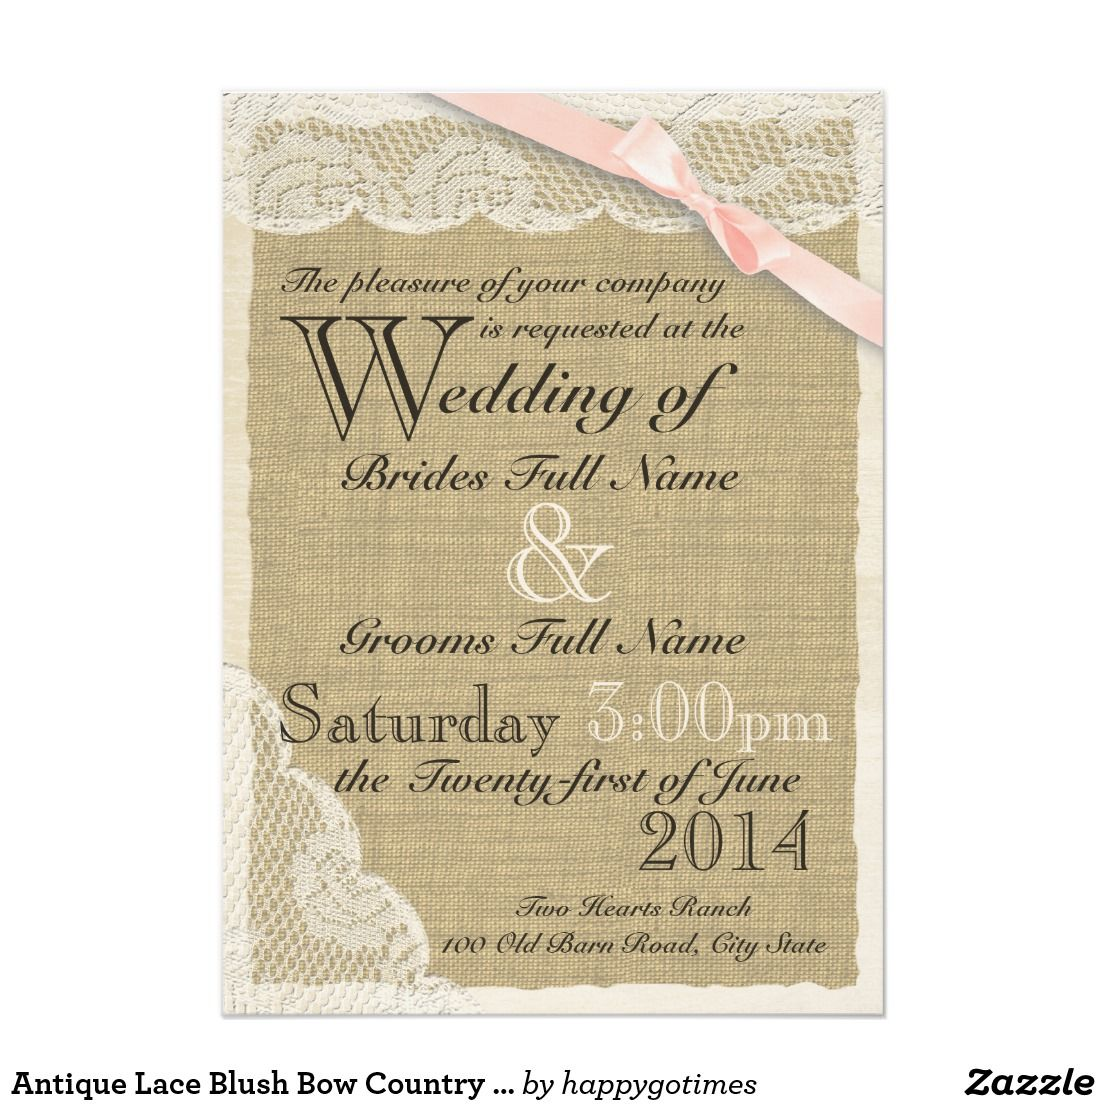 Antique lace blush bow country wedding card country wedding